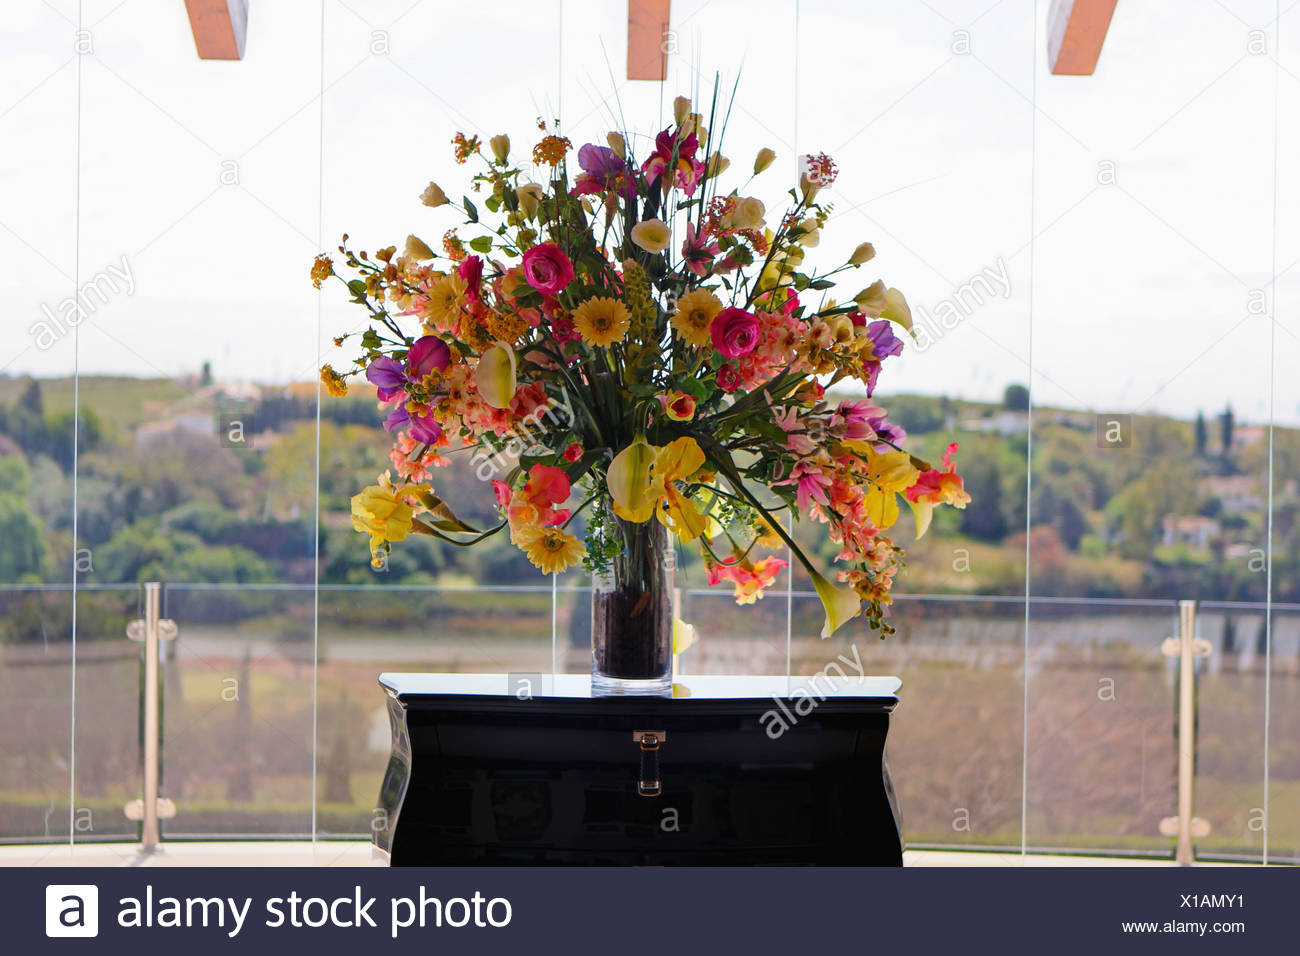 Formal Floral Arrangement Of Pink And Yellow Summer Flowers In Vase On Table Beside Large Windows In Modern Hall Stock Photo Alamy